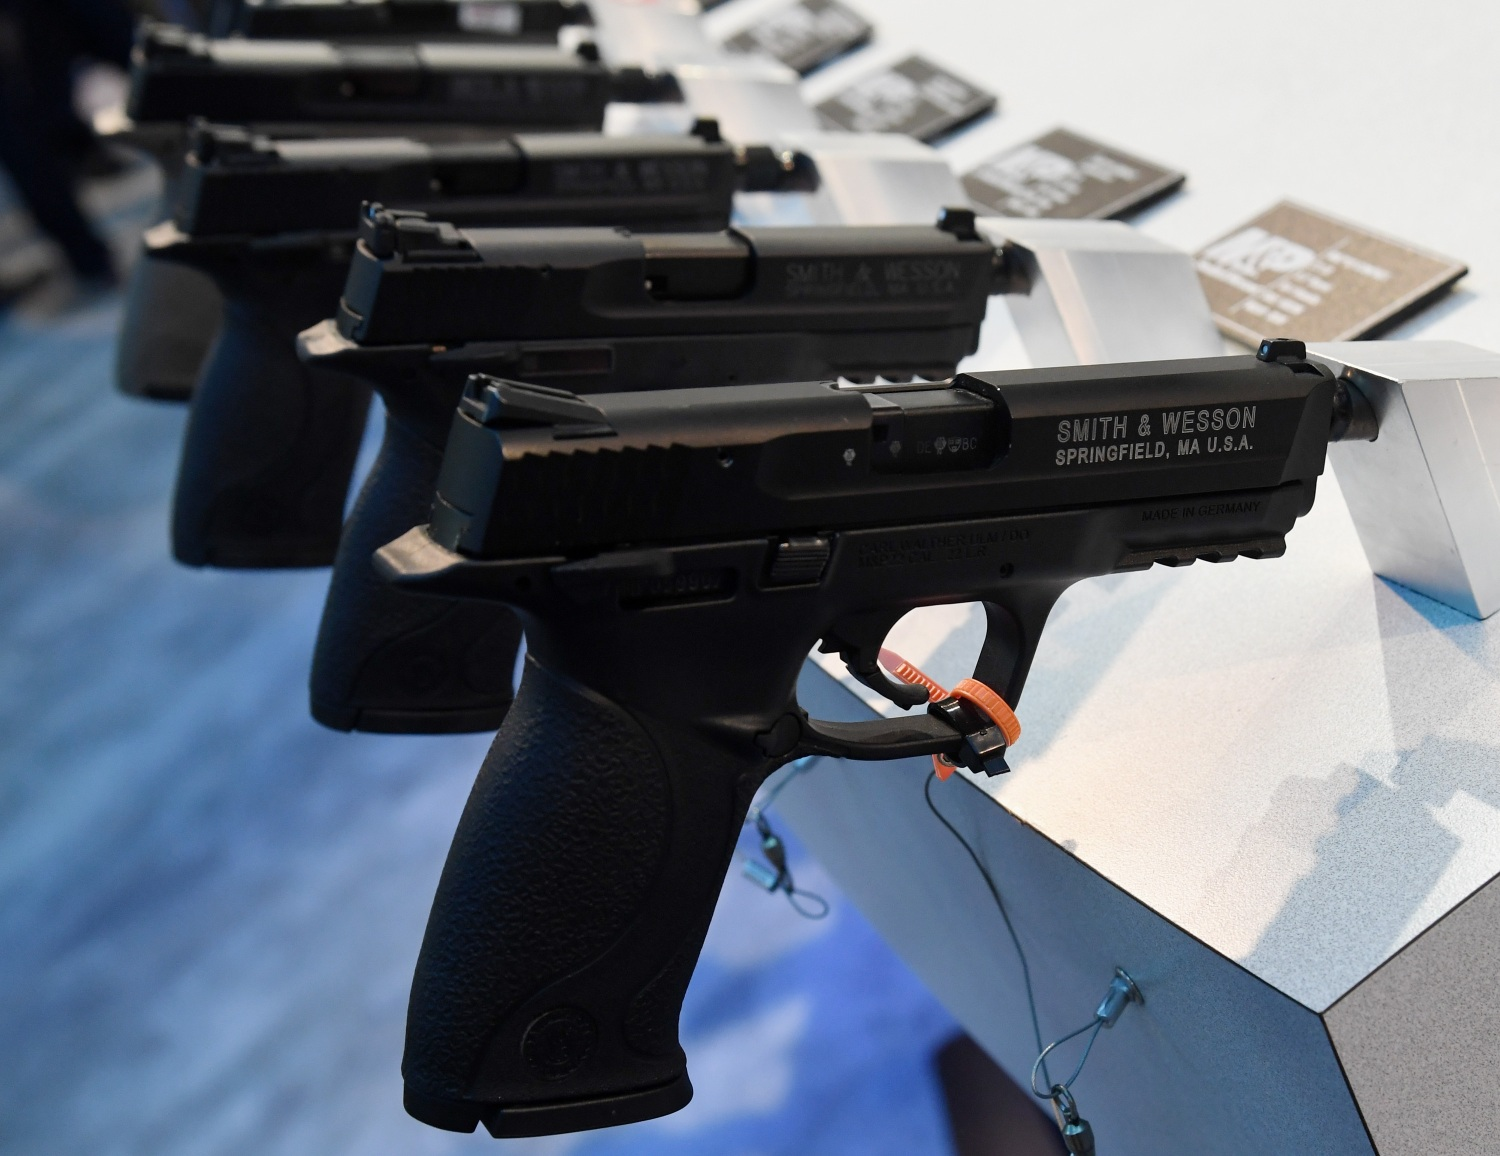 UC Davis Study: COVID-19 Concerns Causing Spike In Sales To First-Time Gun Owners